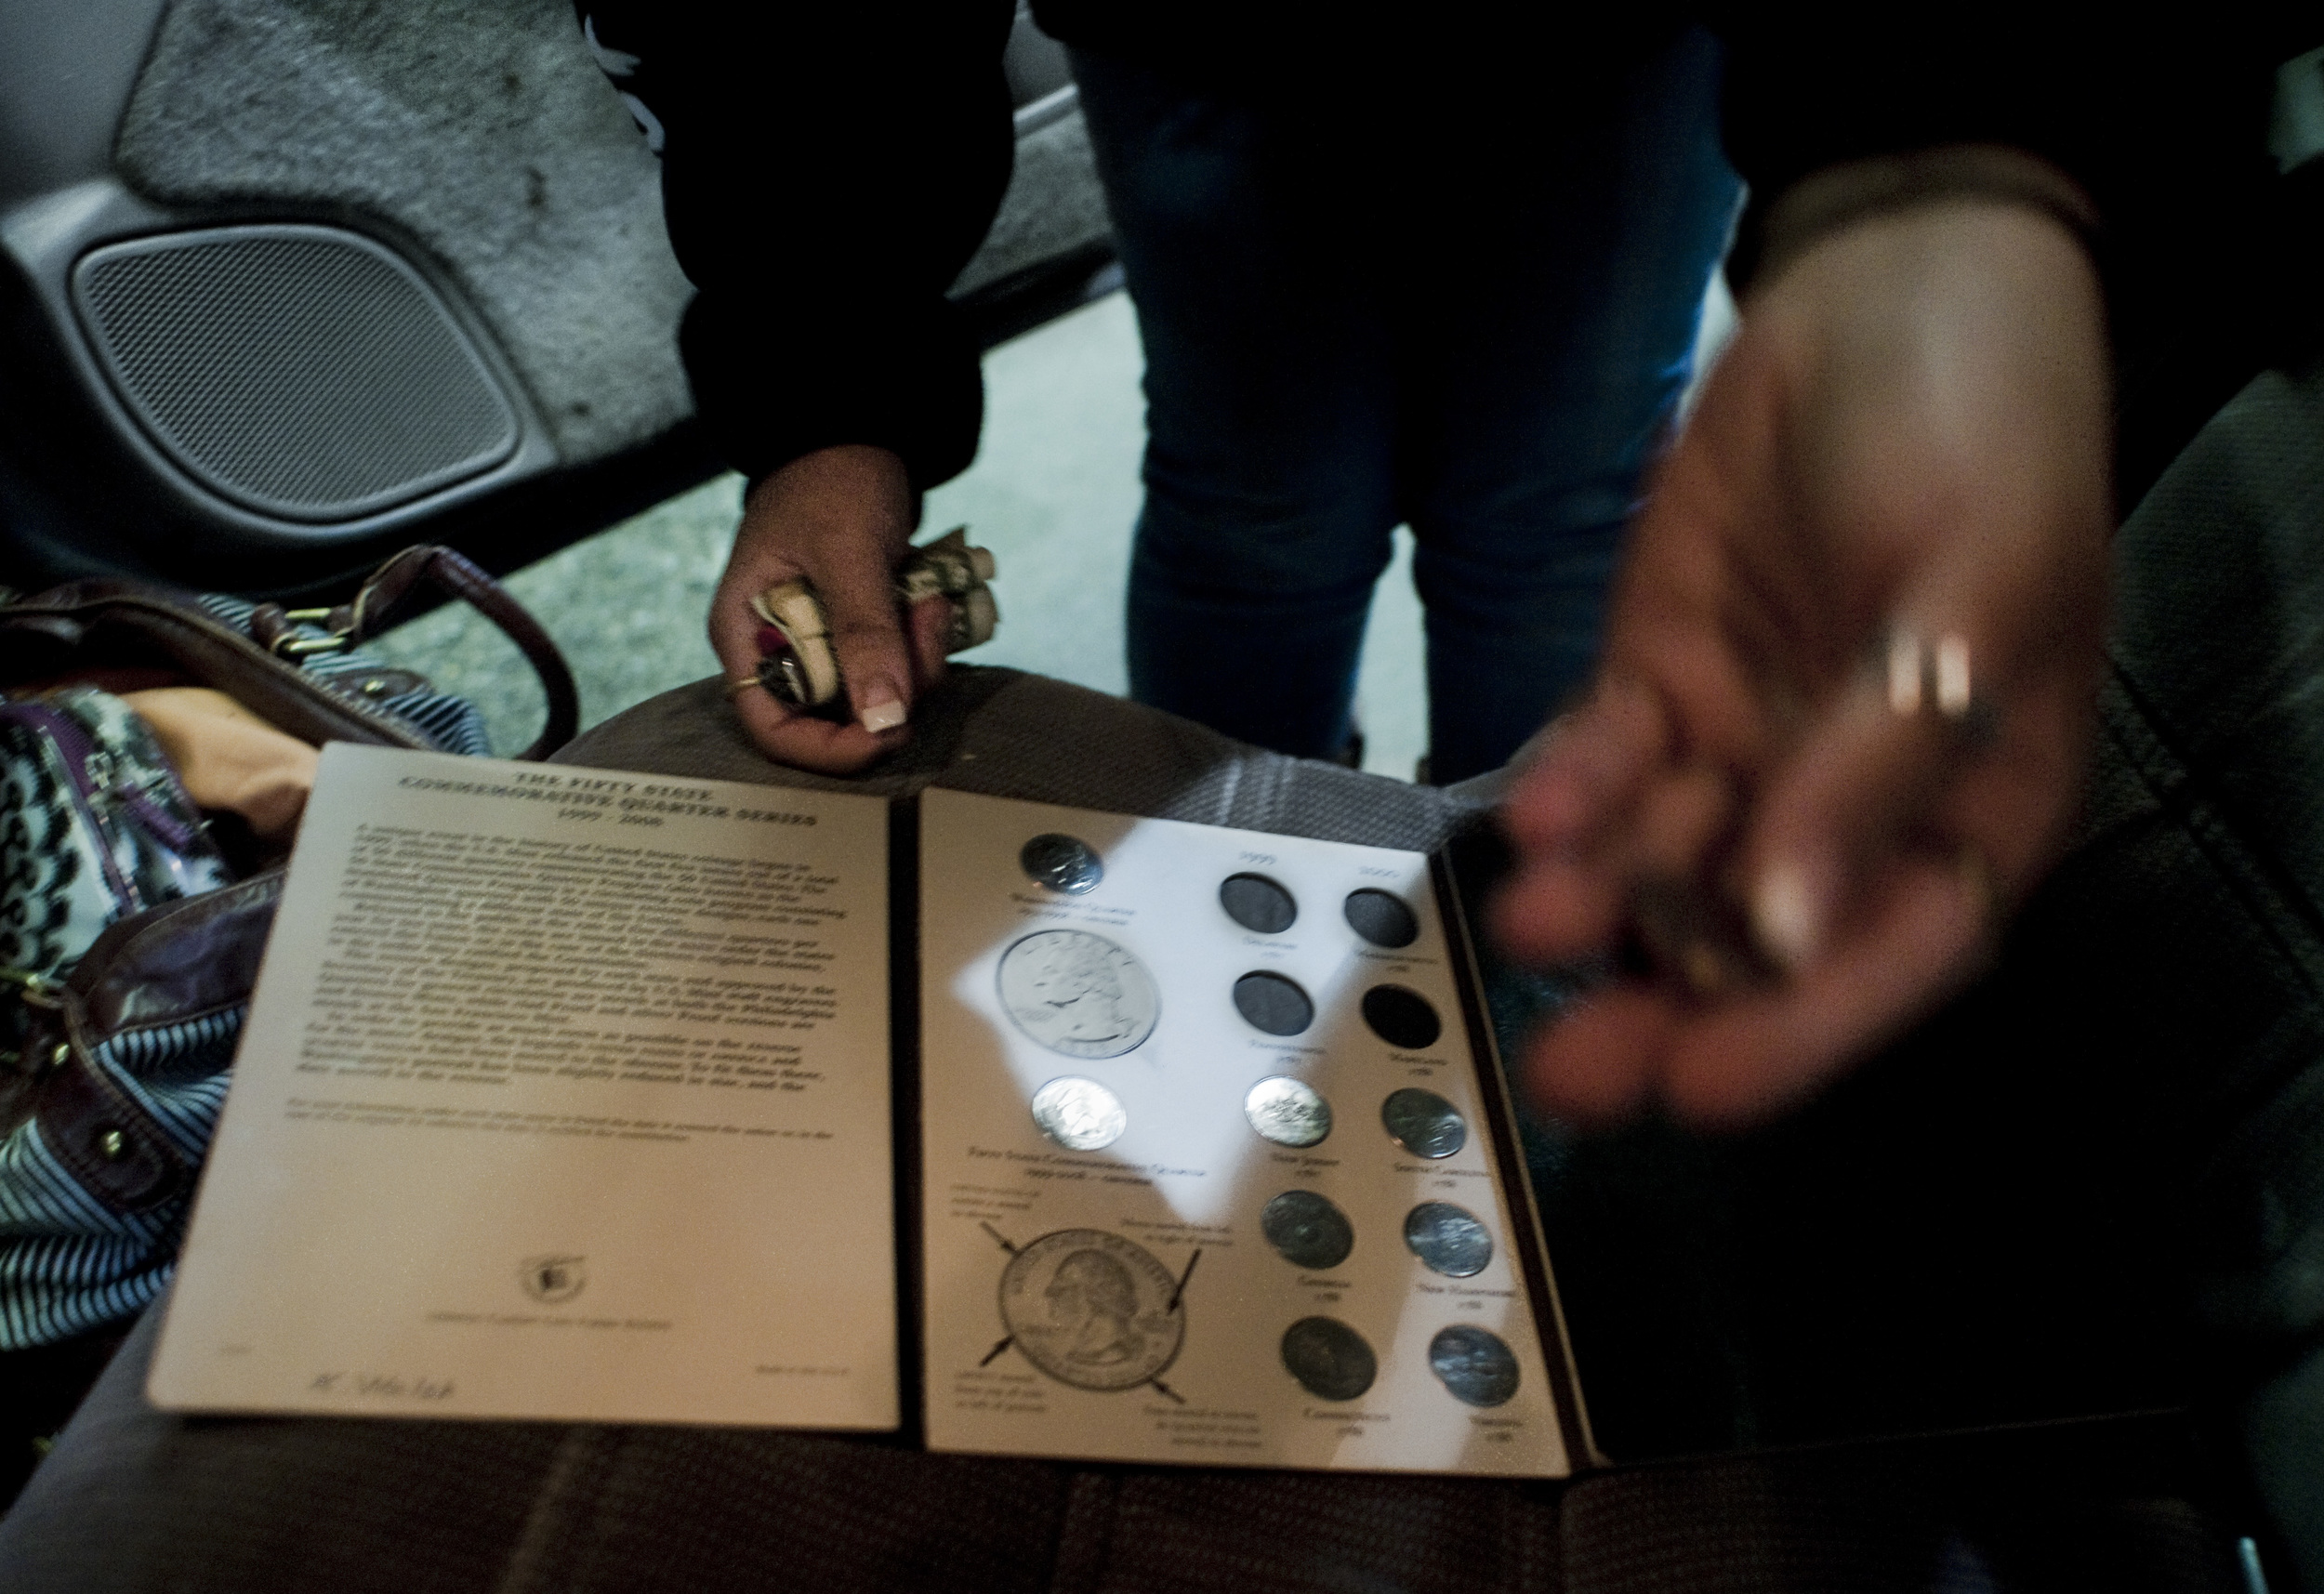 The fear of withdrawal and the physical and psychological dependence that comes with opiate addiction drives many chronic users to go to extreme measures to get their next fix. Here quarters are taken from a coin collection to afford another fix.